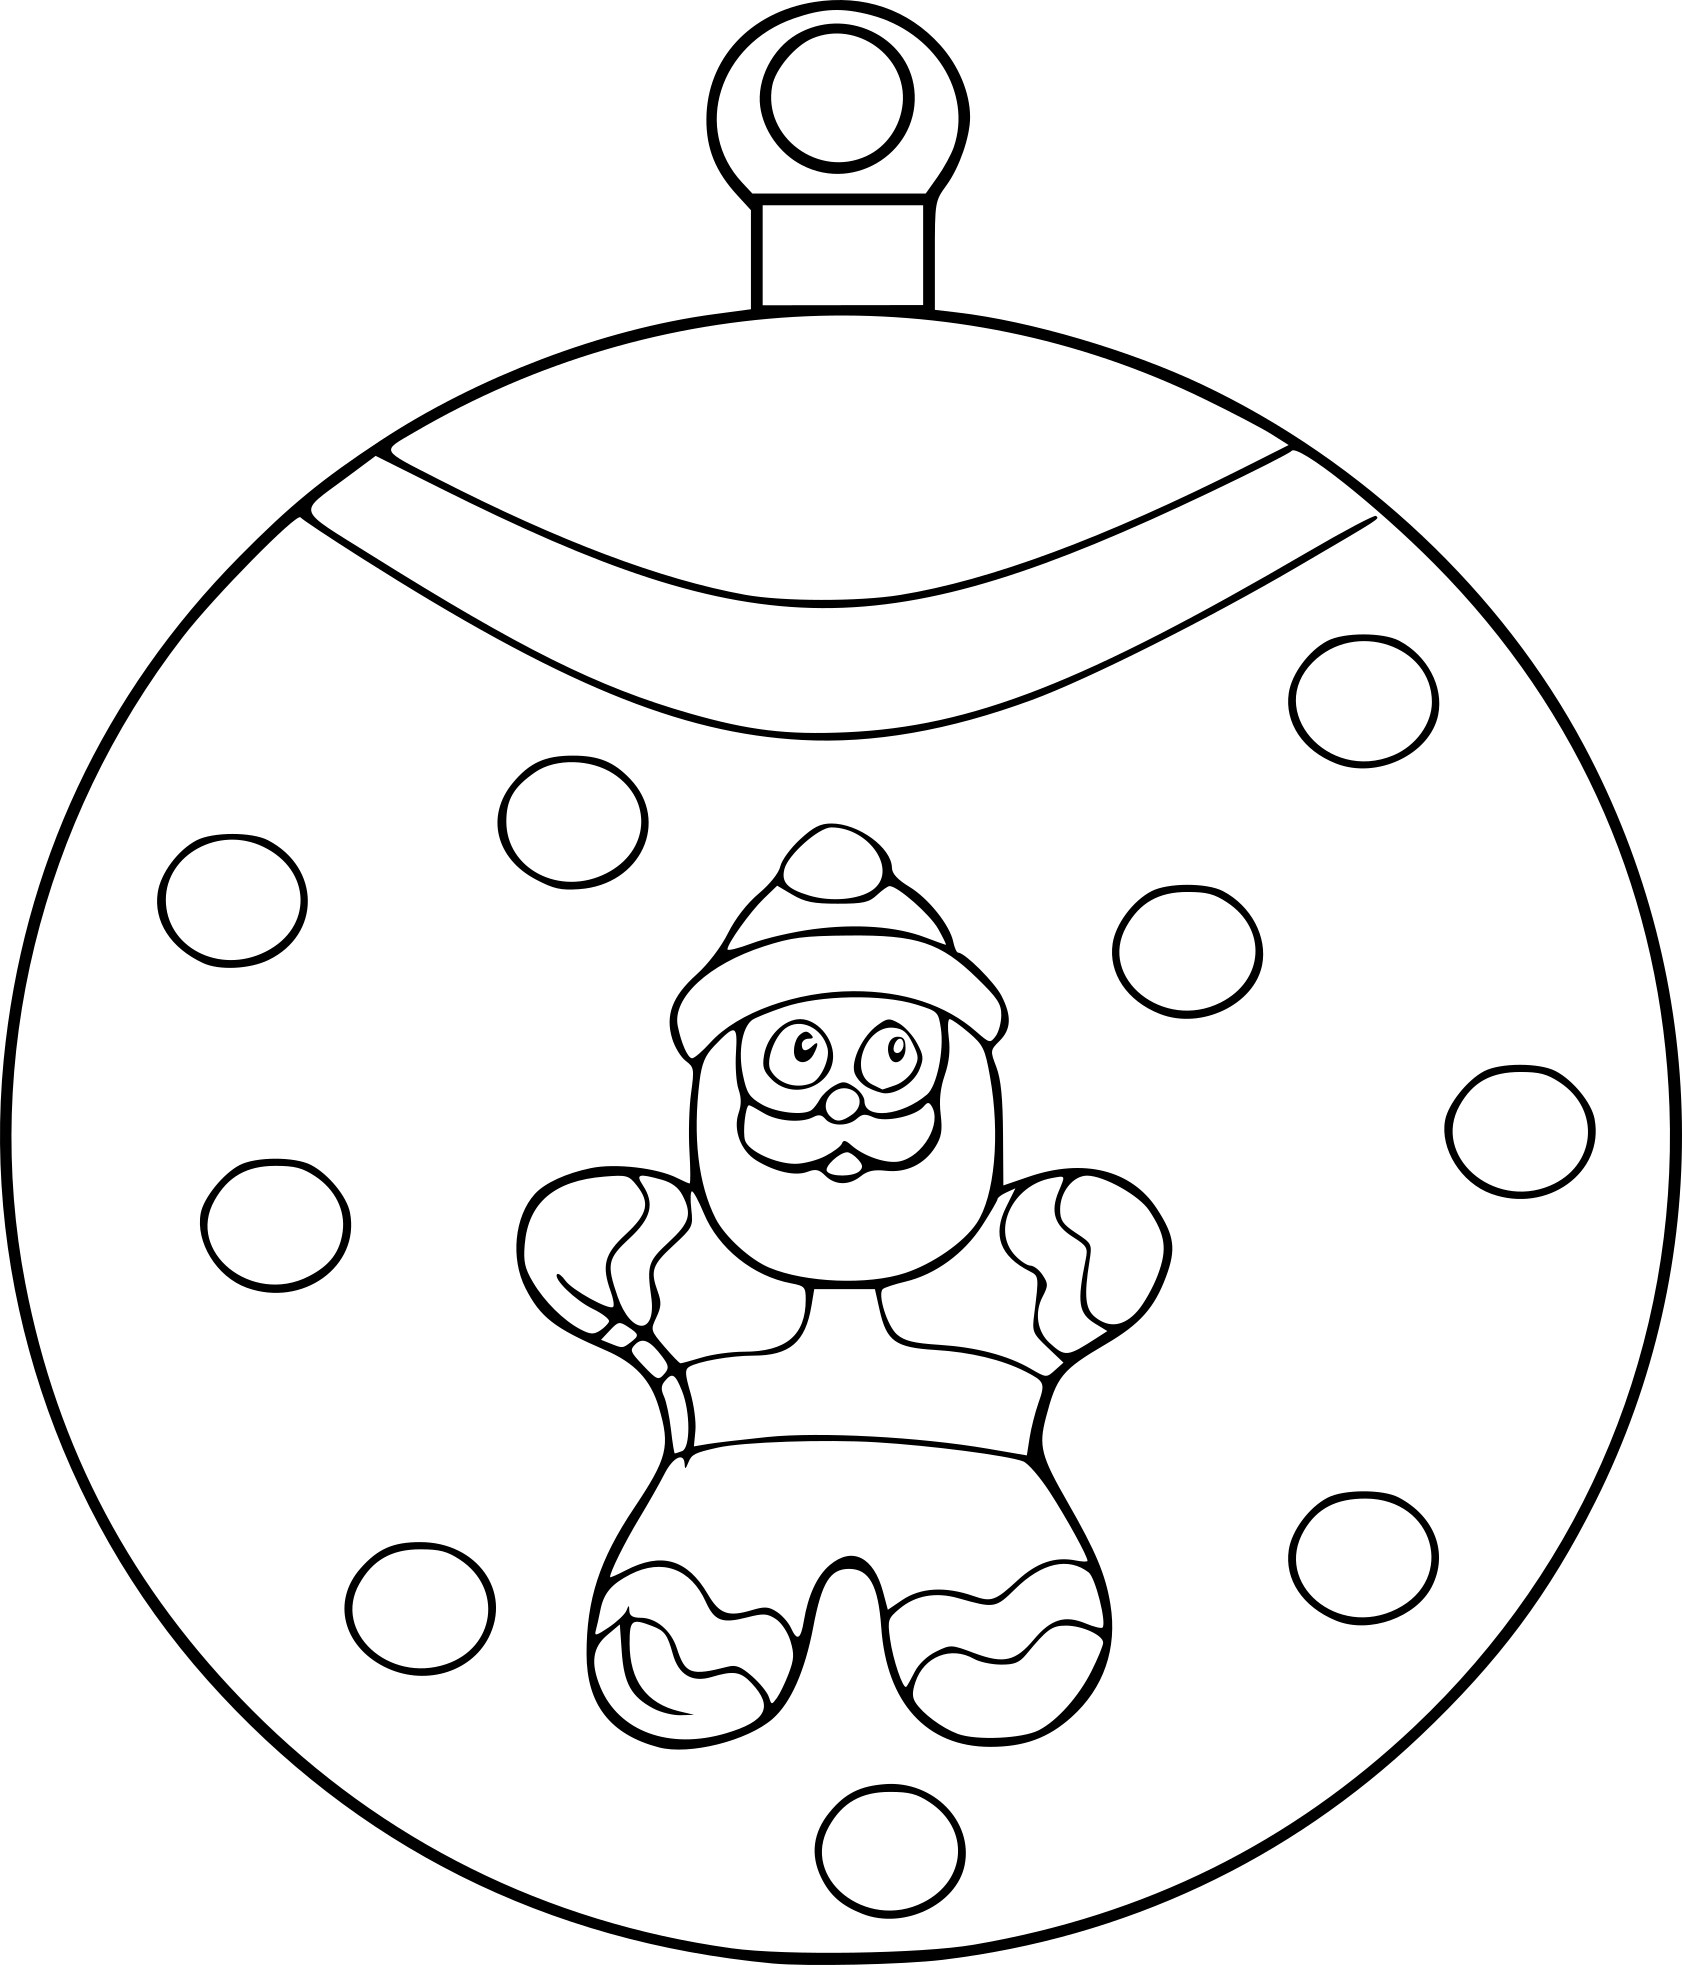 Coloriage boule p re no l imprimer - Coloriage boule noel ...